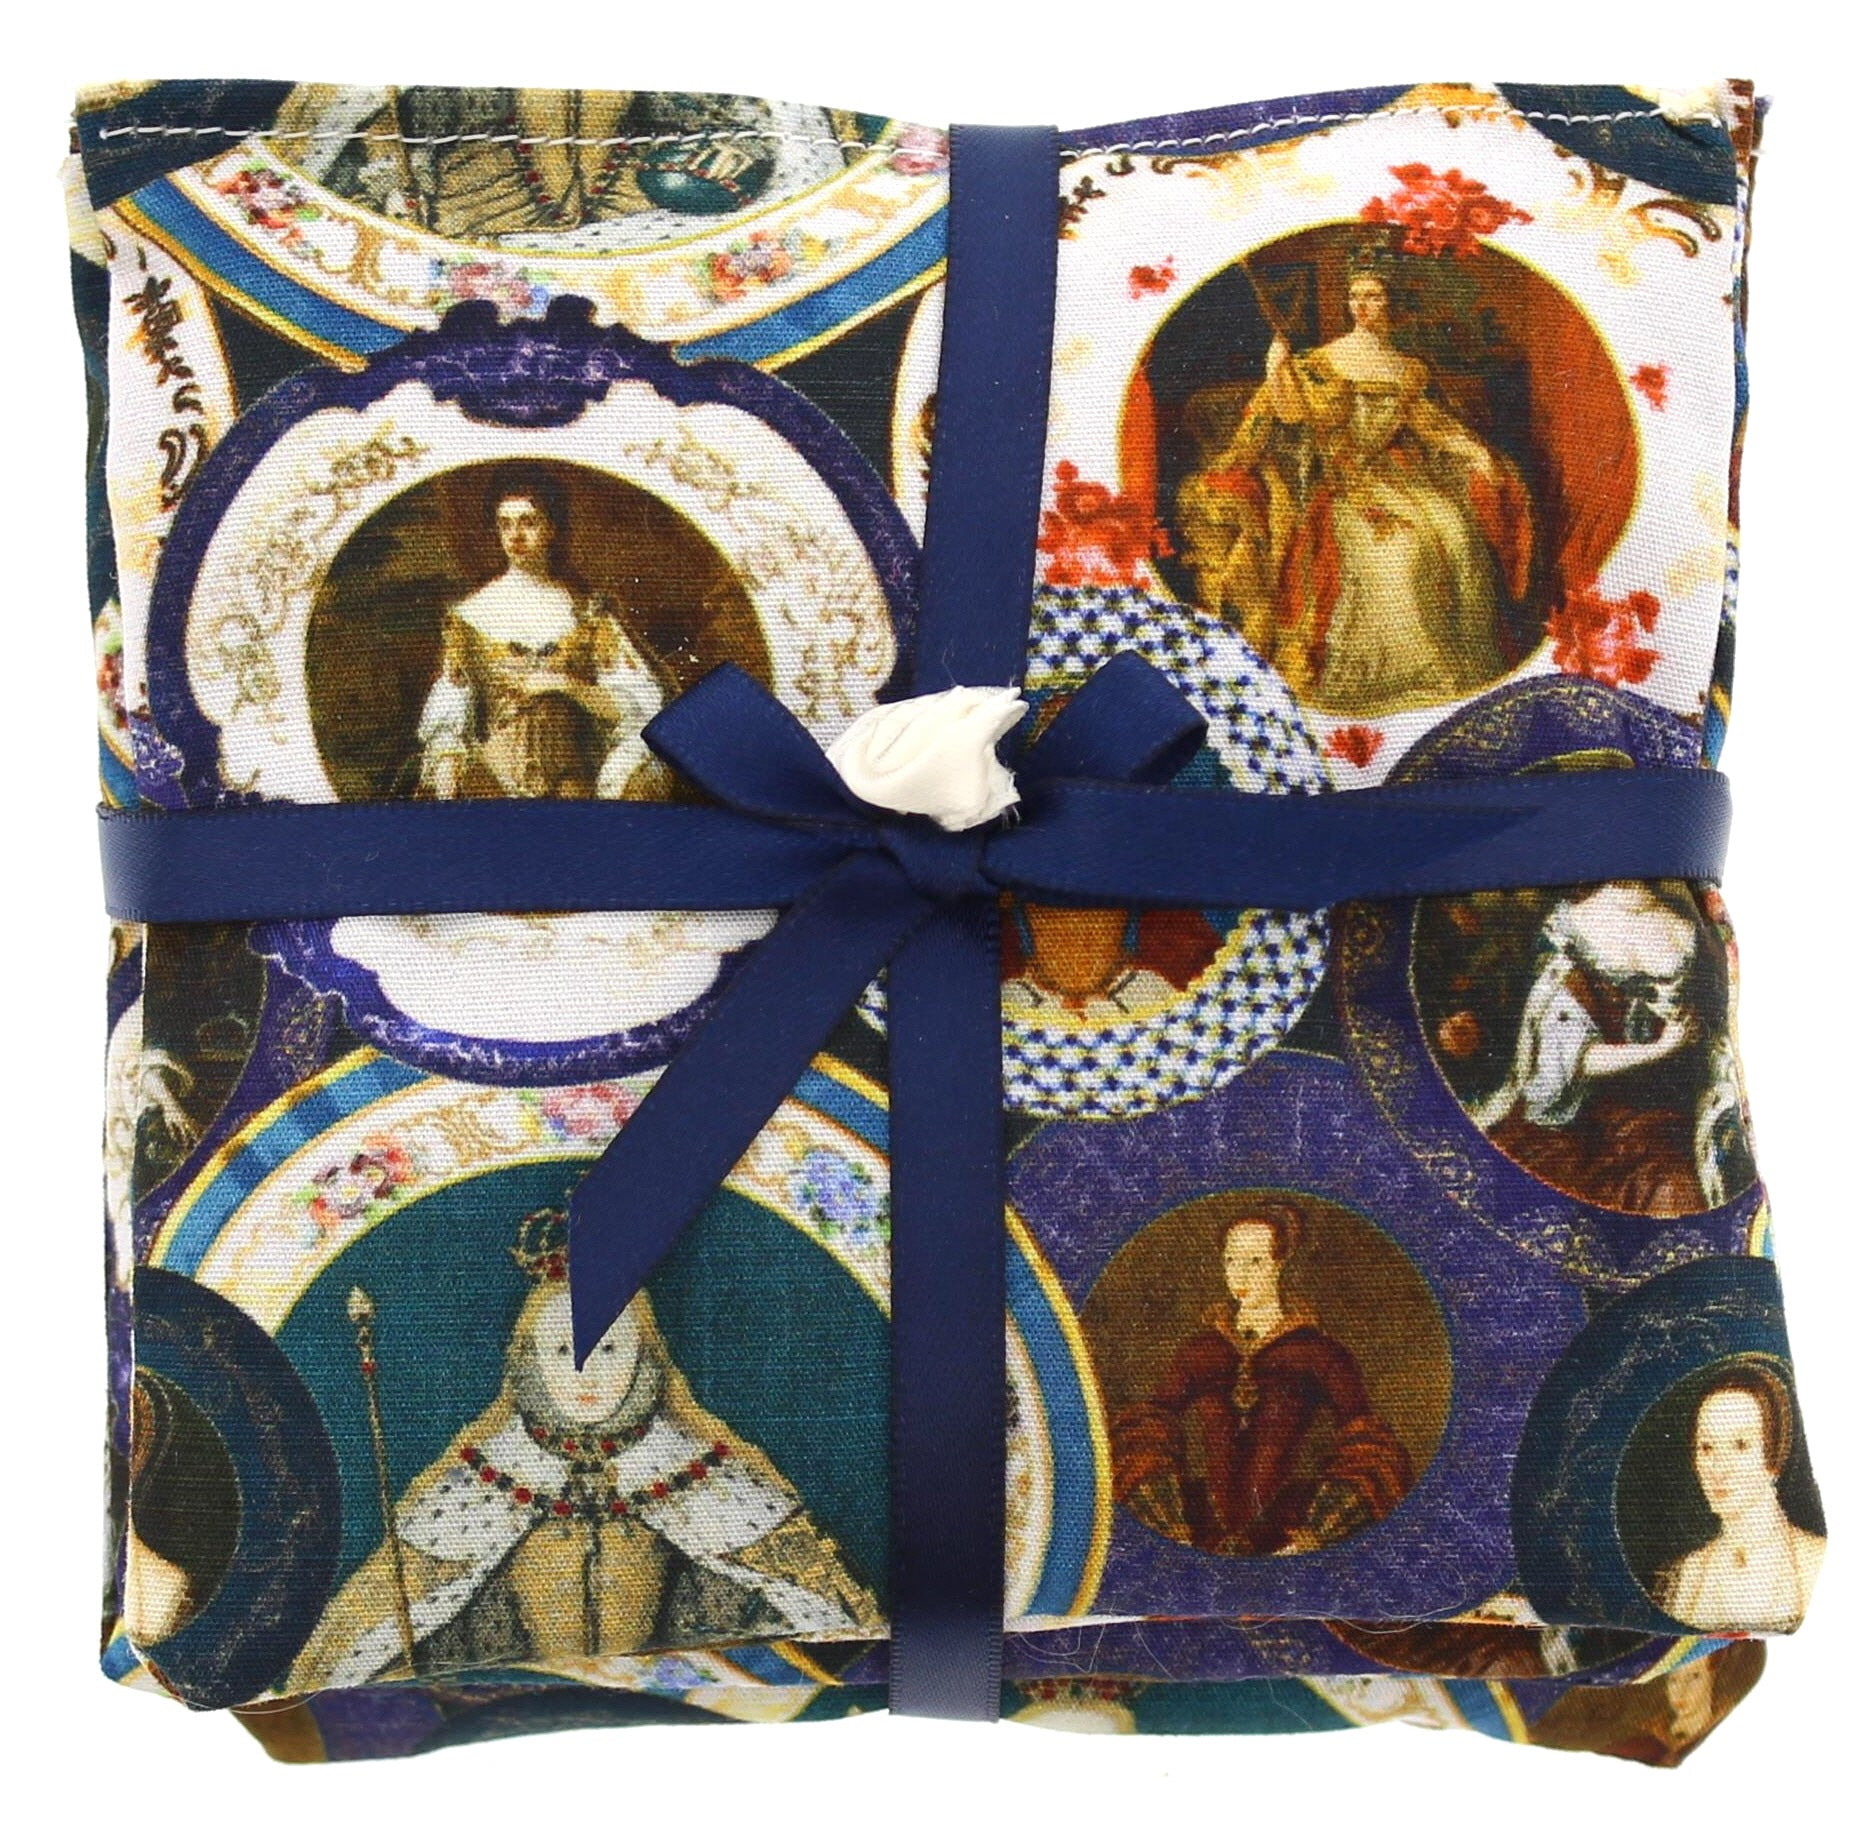 Queens of England Lavender Pillows